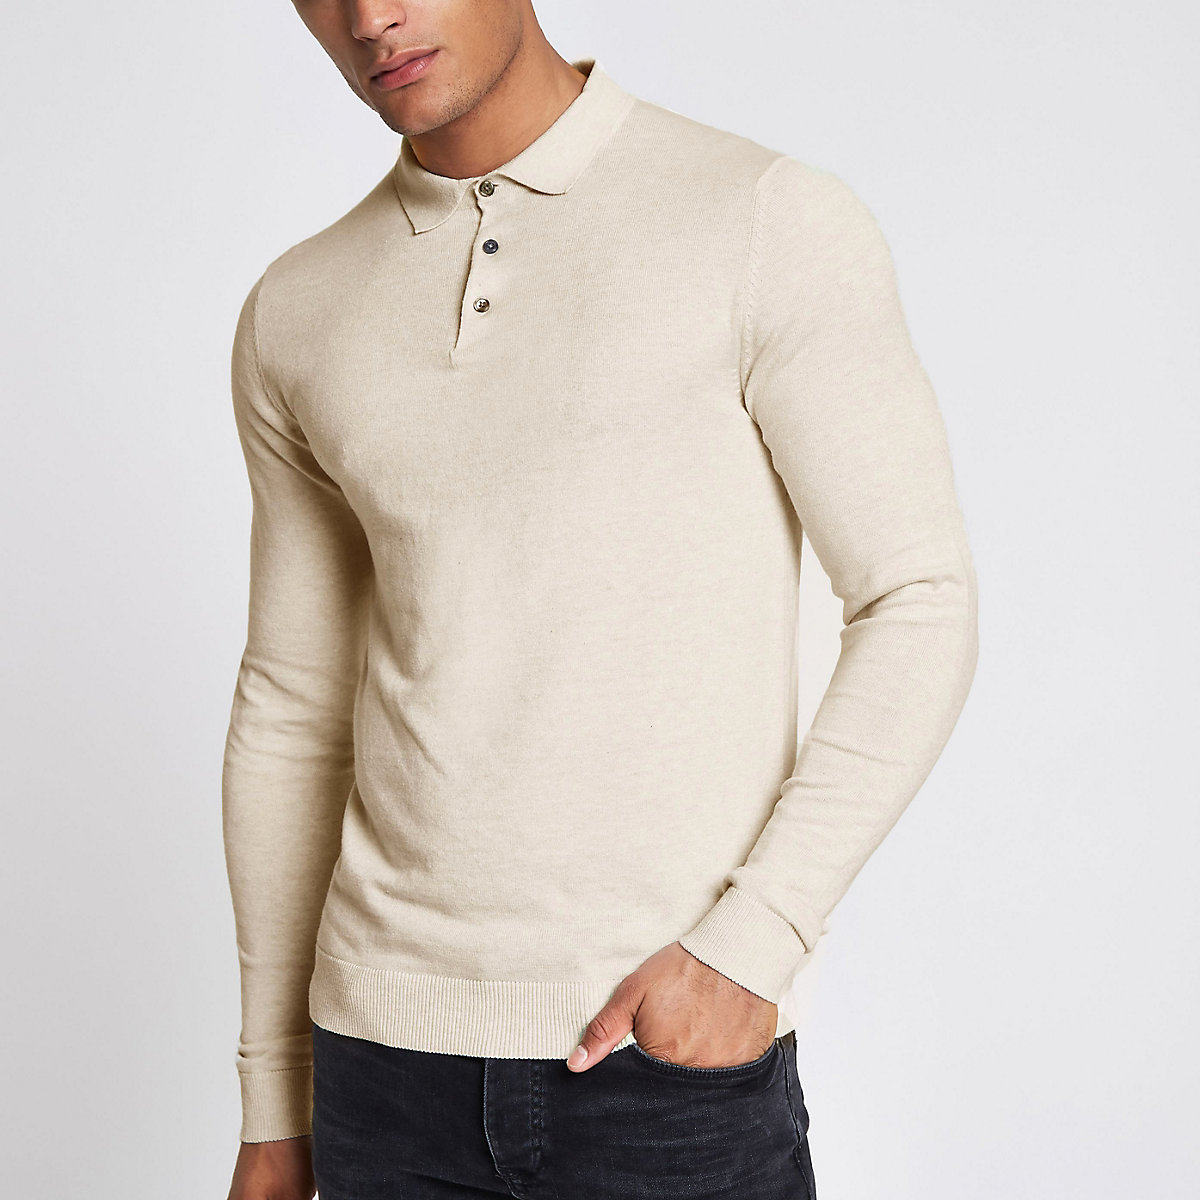 Jack & Jones Premium beige knitted polo shirt